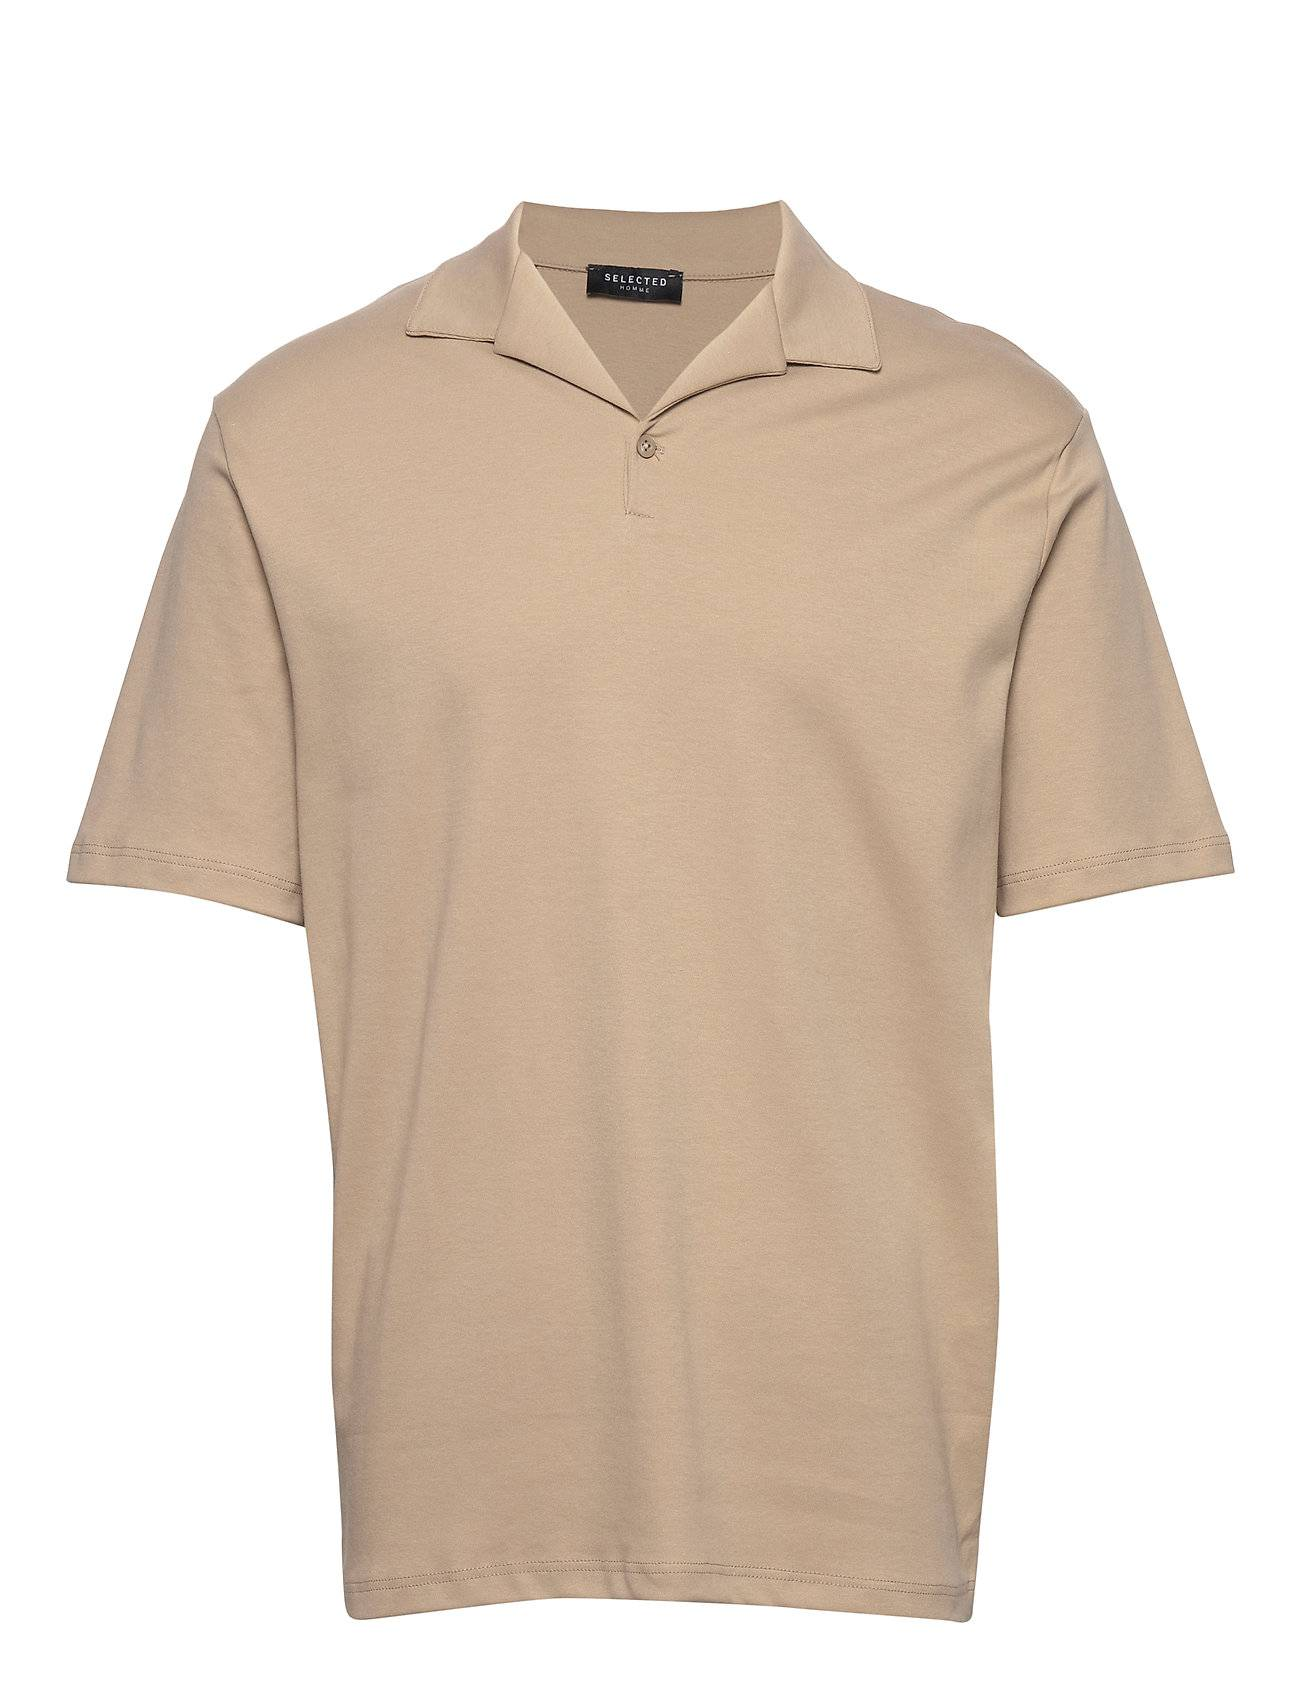 Selected Homme Slhflorian Ss Polo B Polos Short-sleeved Beige Selected Homme